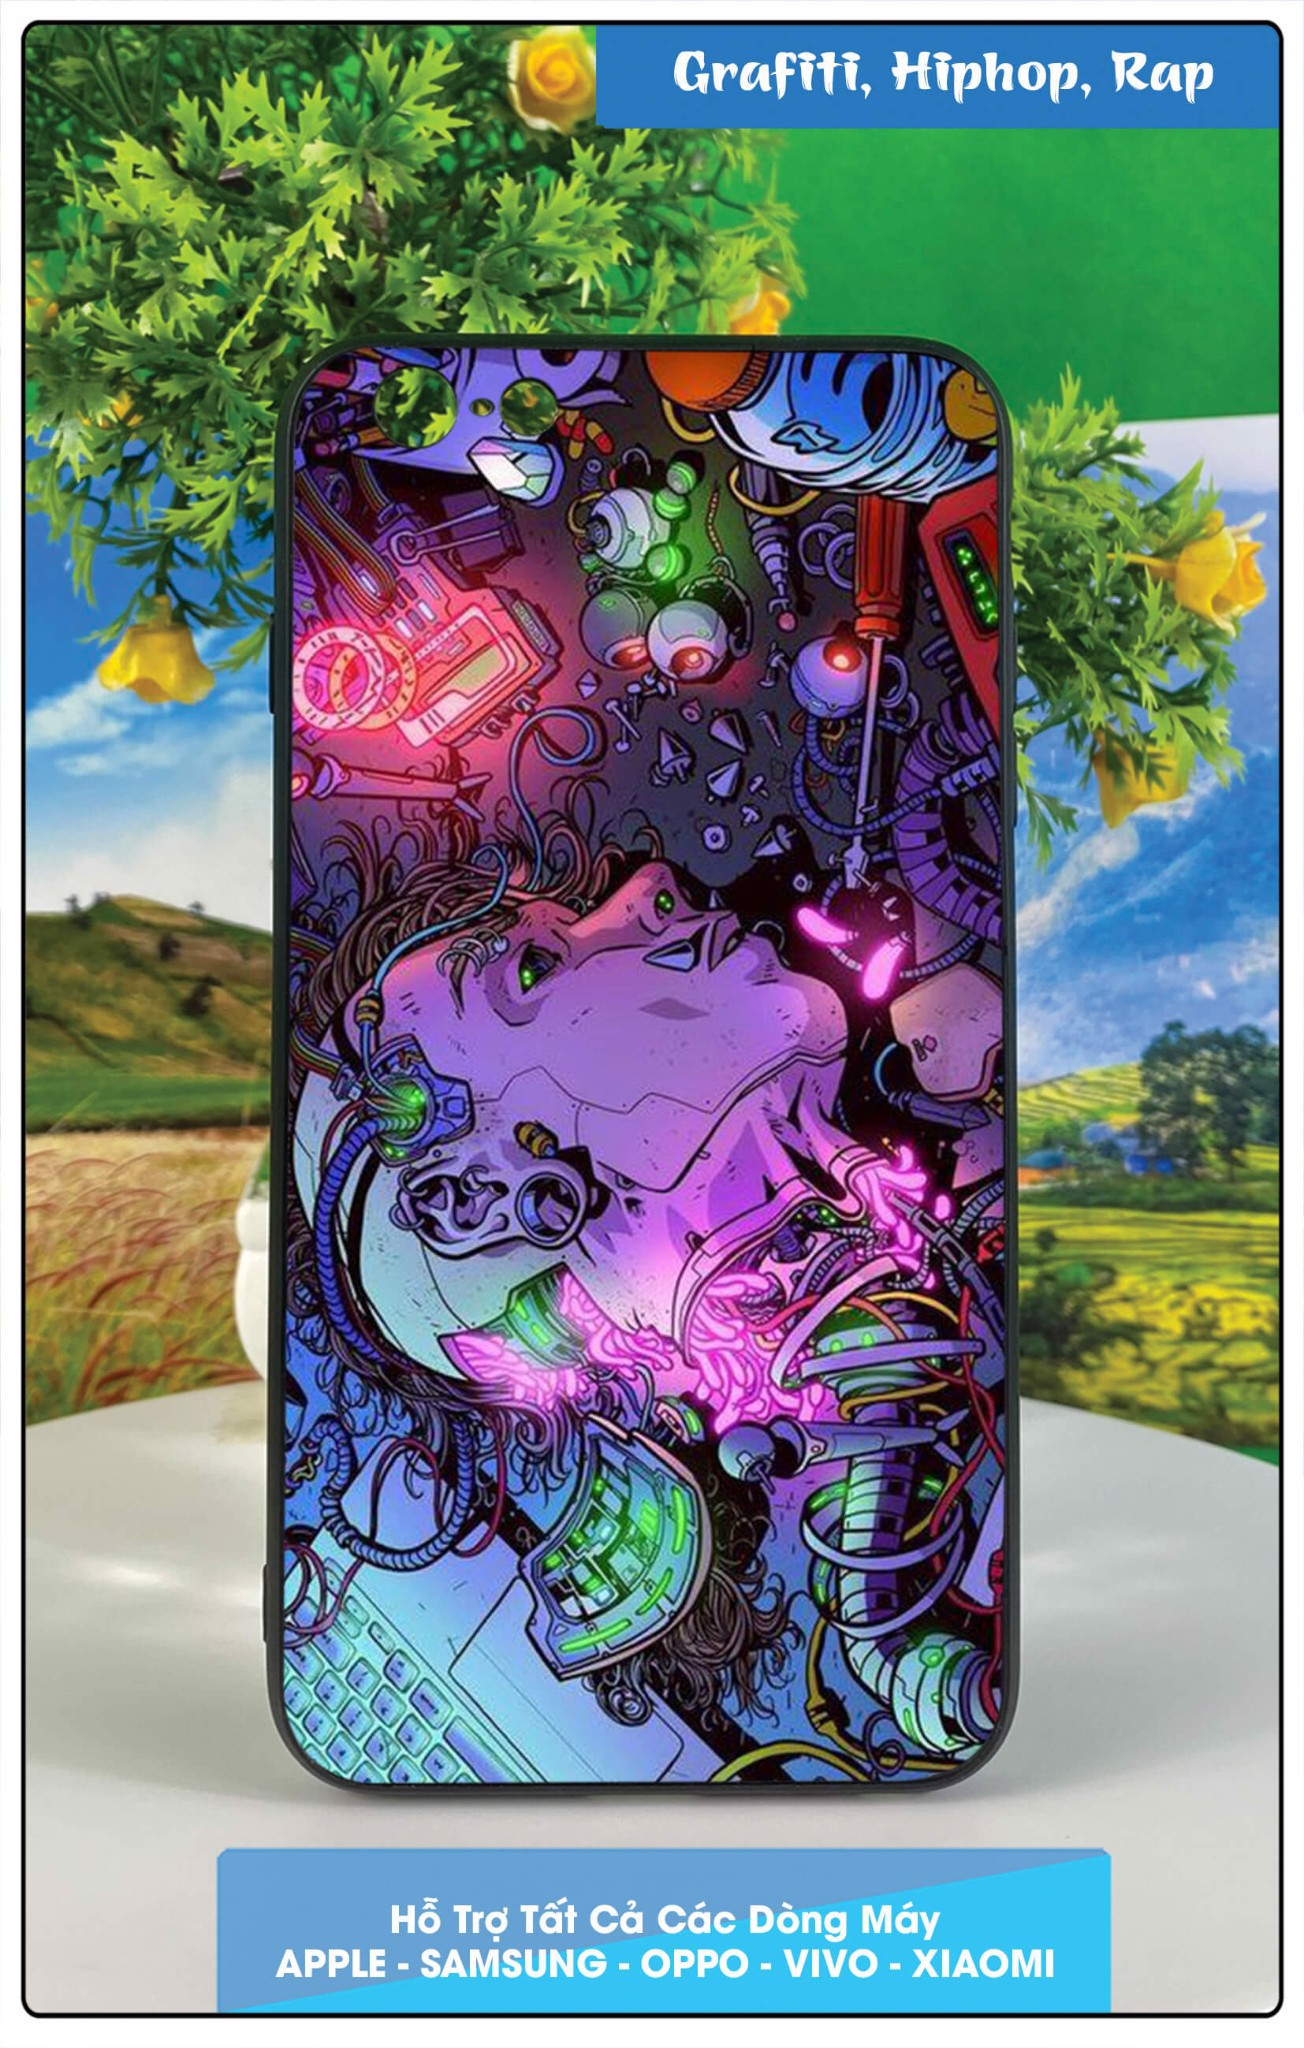 Ốp Iphone 6 plus in hình grafiti, hip-hop, rap